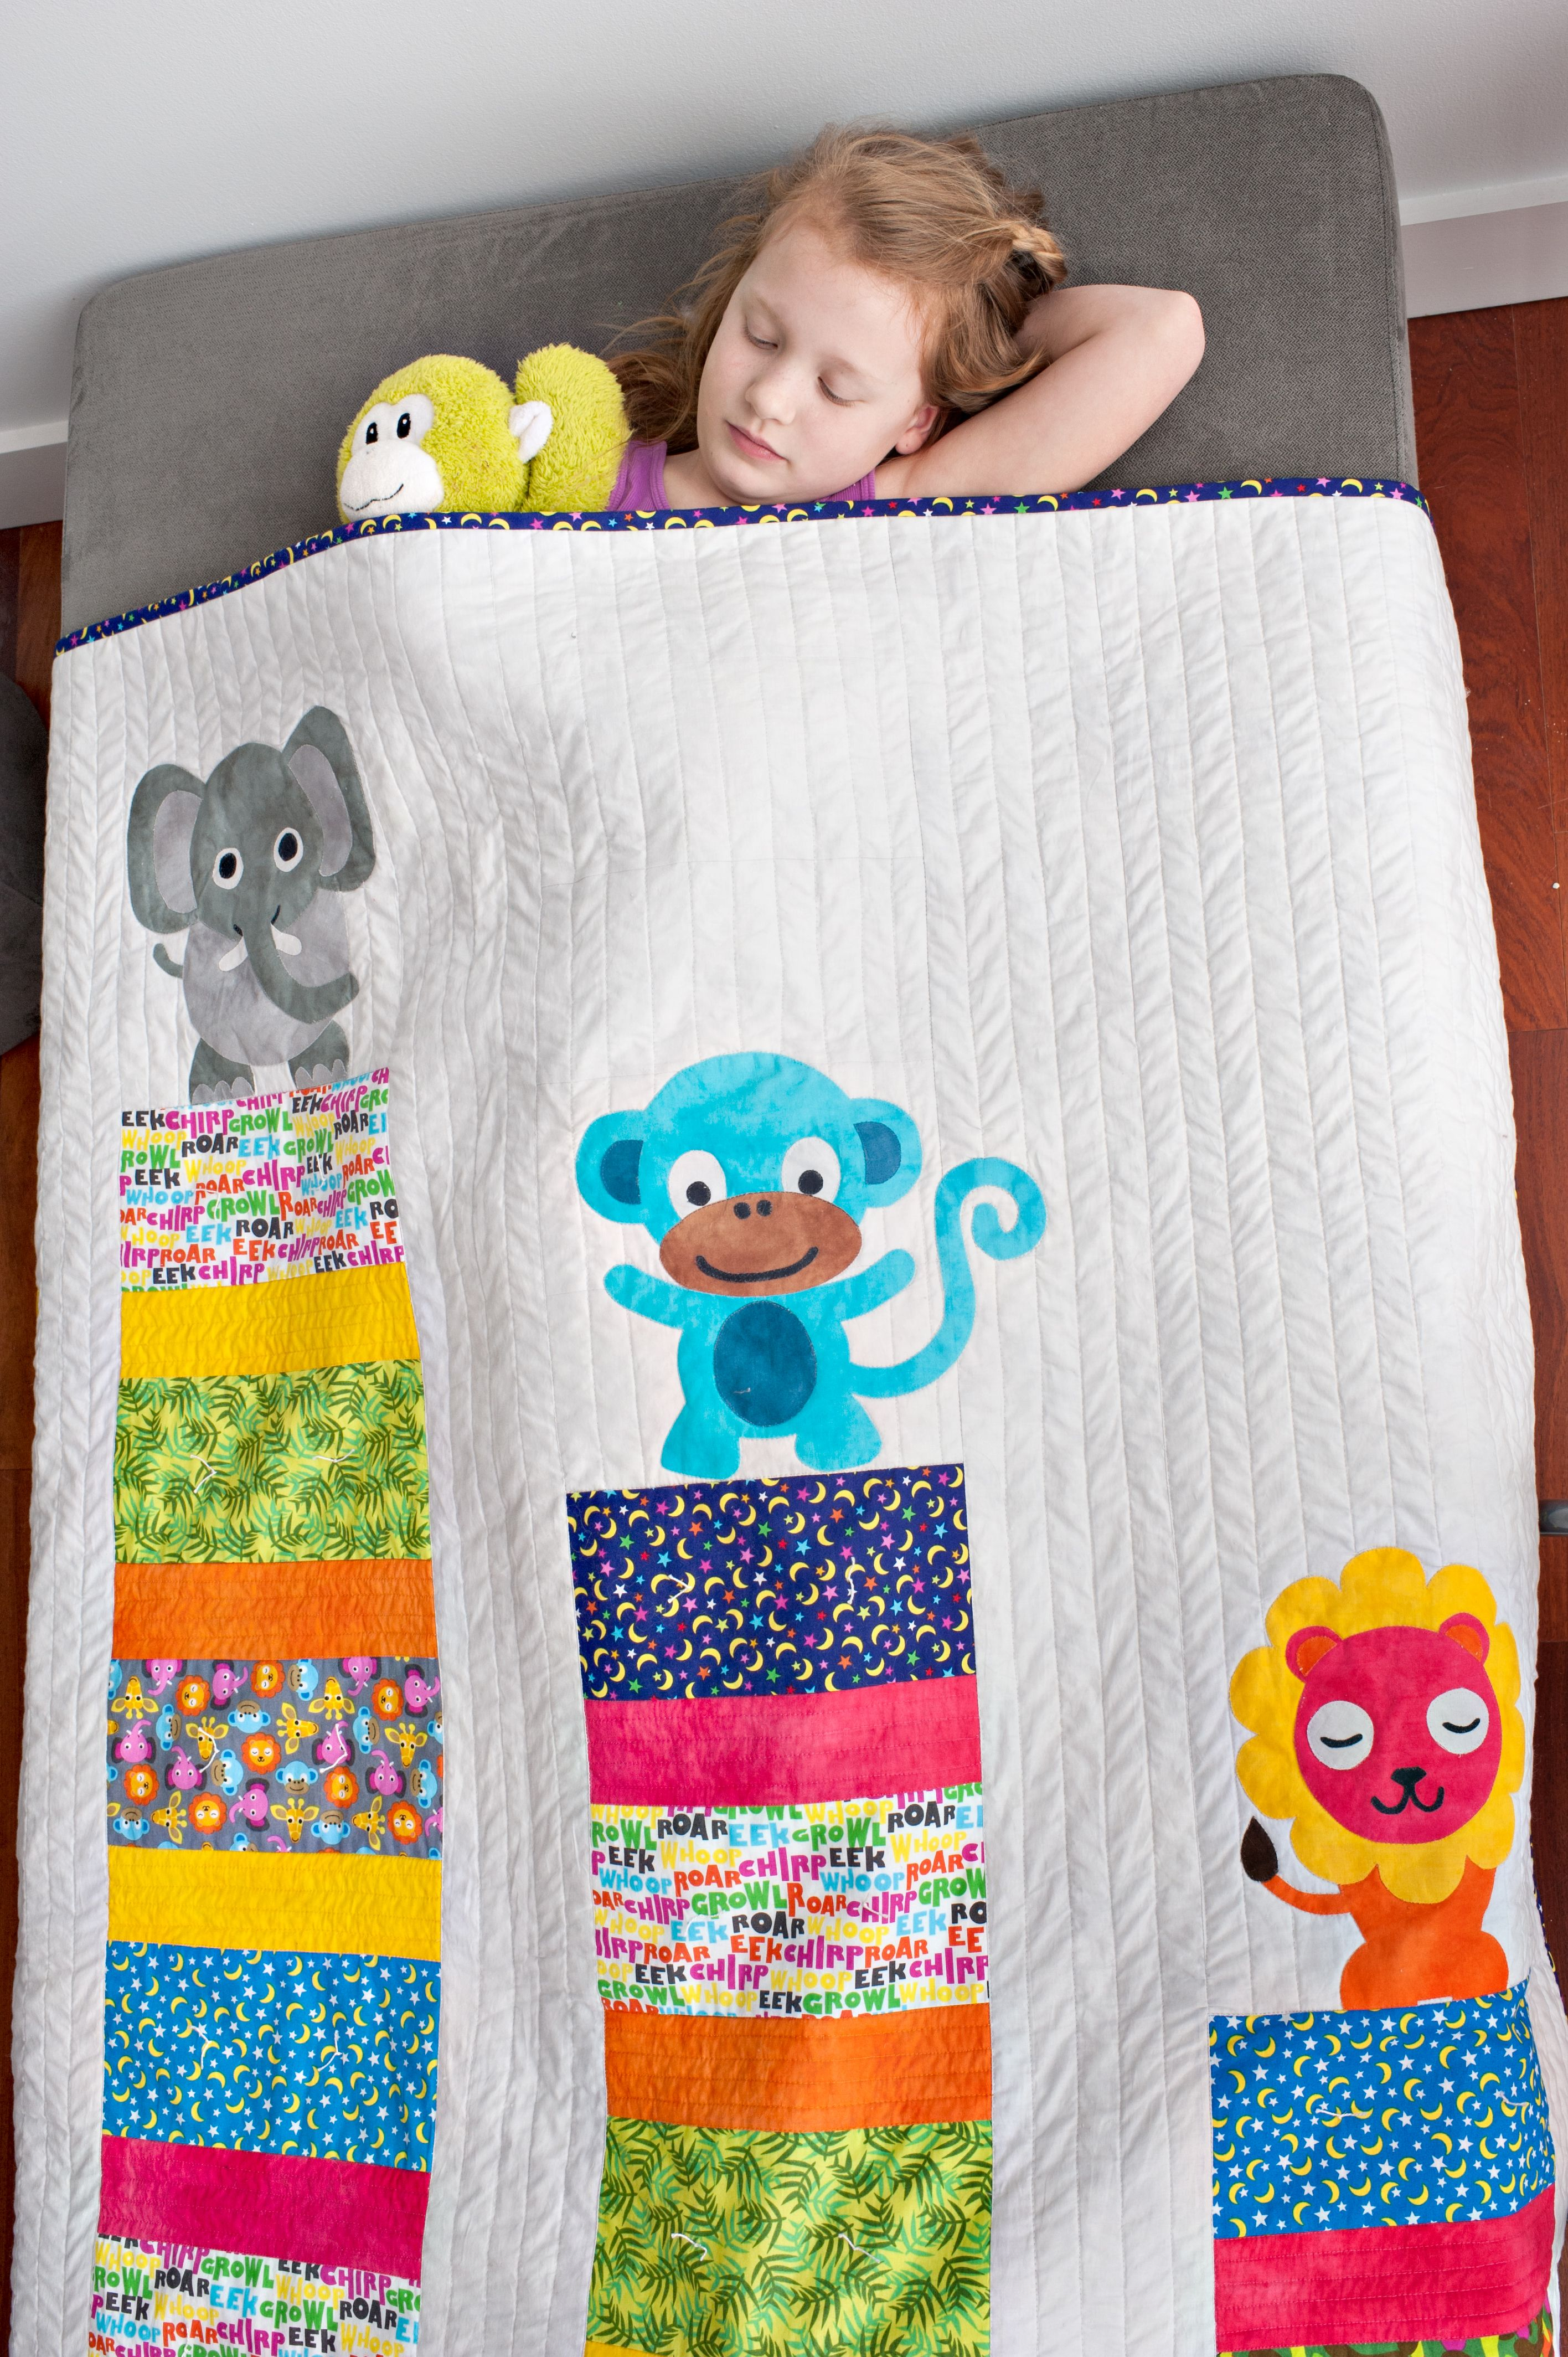 French Bull's Kids Jungle Collection for Windham Fabrics. So many cute prints, sew many possibilities - like this Elephant, Monkey and Lion quilt!